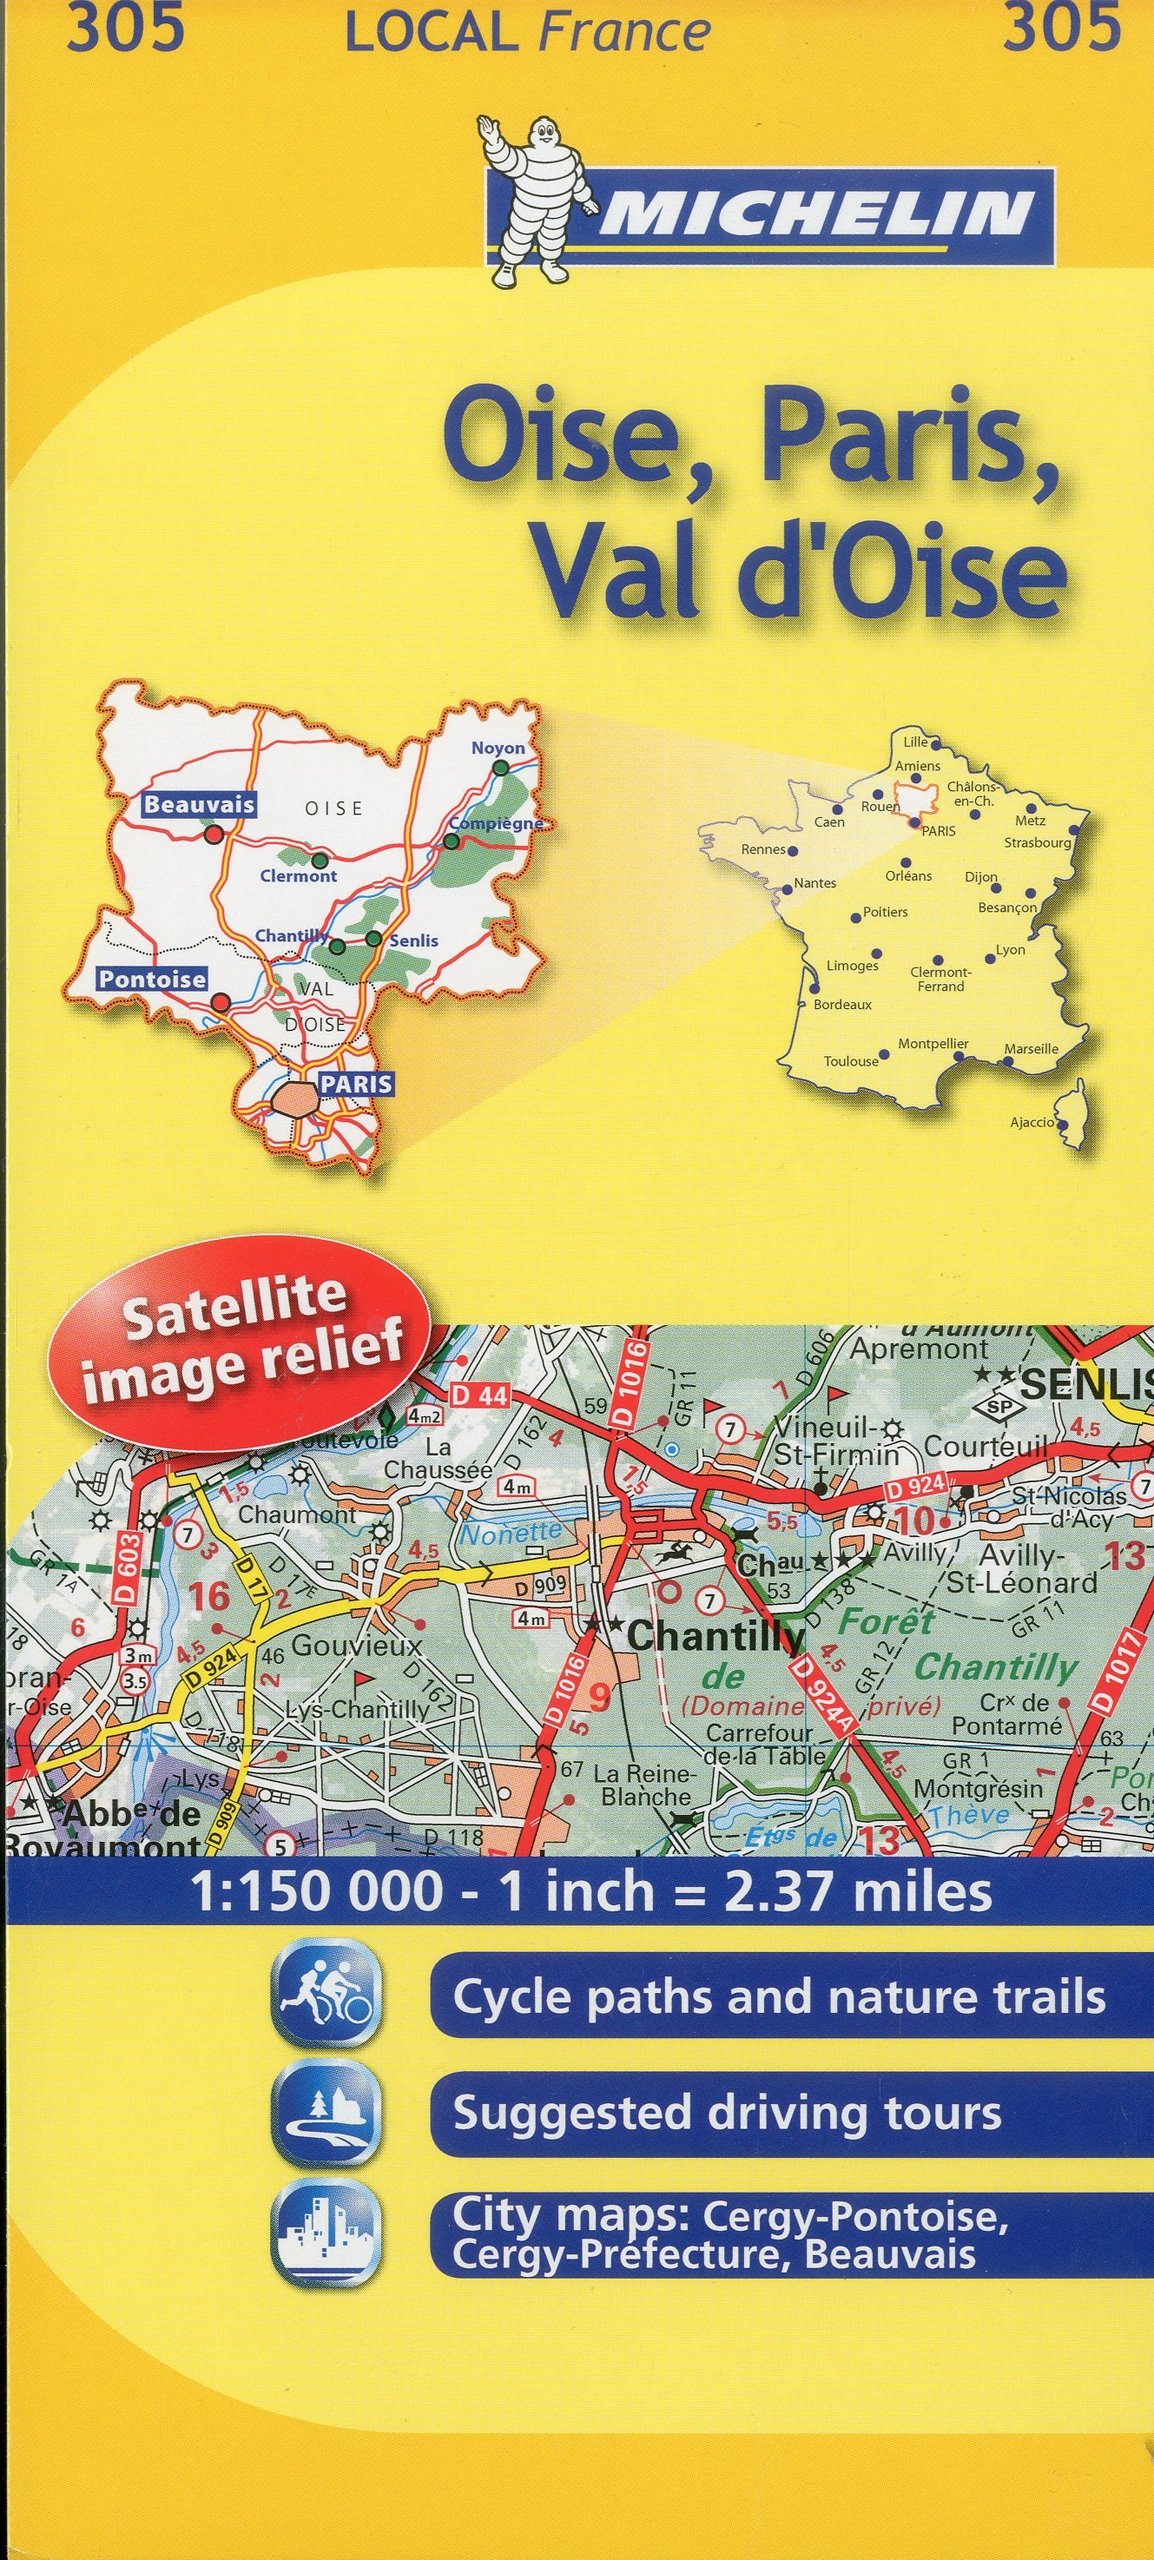 Michelin Map France Oise Paris Val D Oise 305 Maps Local Michelin English And French Edition Michelin 9782067133600 Amazon Com Books